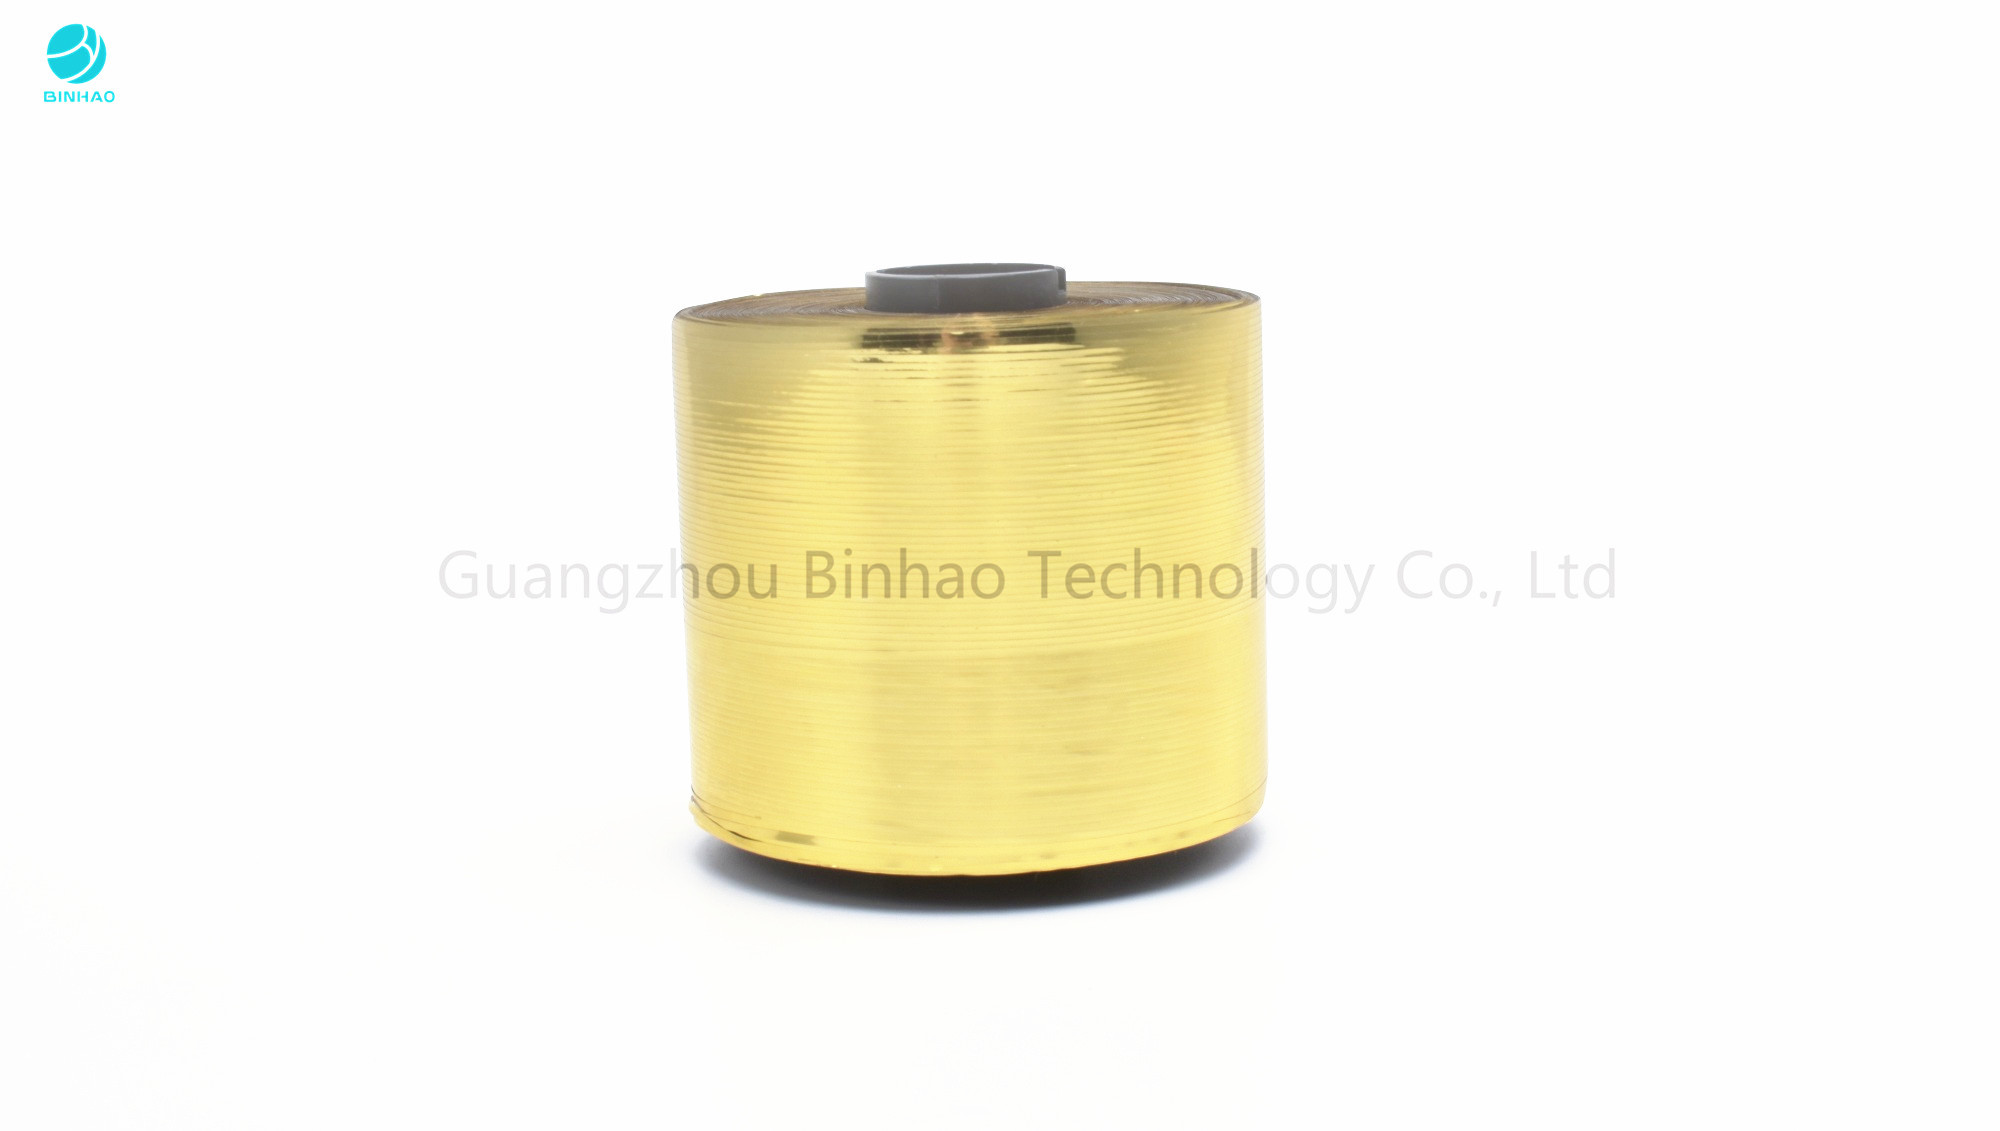 Gold Silver Metal 4mm Tobacco Tear Strip Tape For Cigarette Cosmetic Box Sealing And Good Decoration